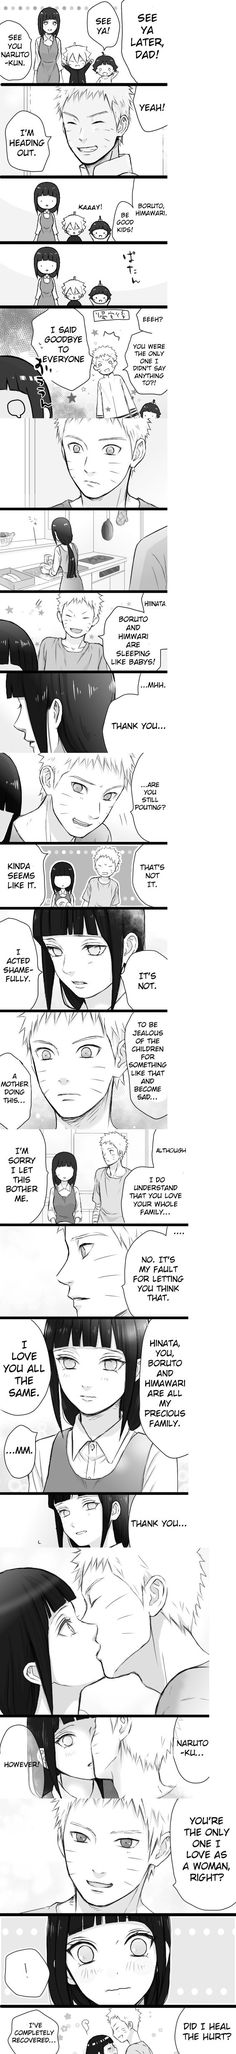 Naruhina - A Mother's Jealousy by bluedragonfan.dev... on @DeviantArt